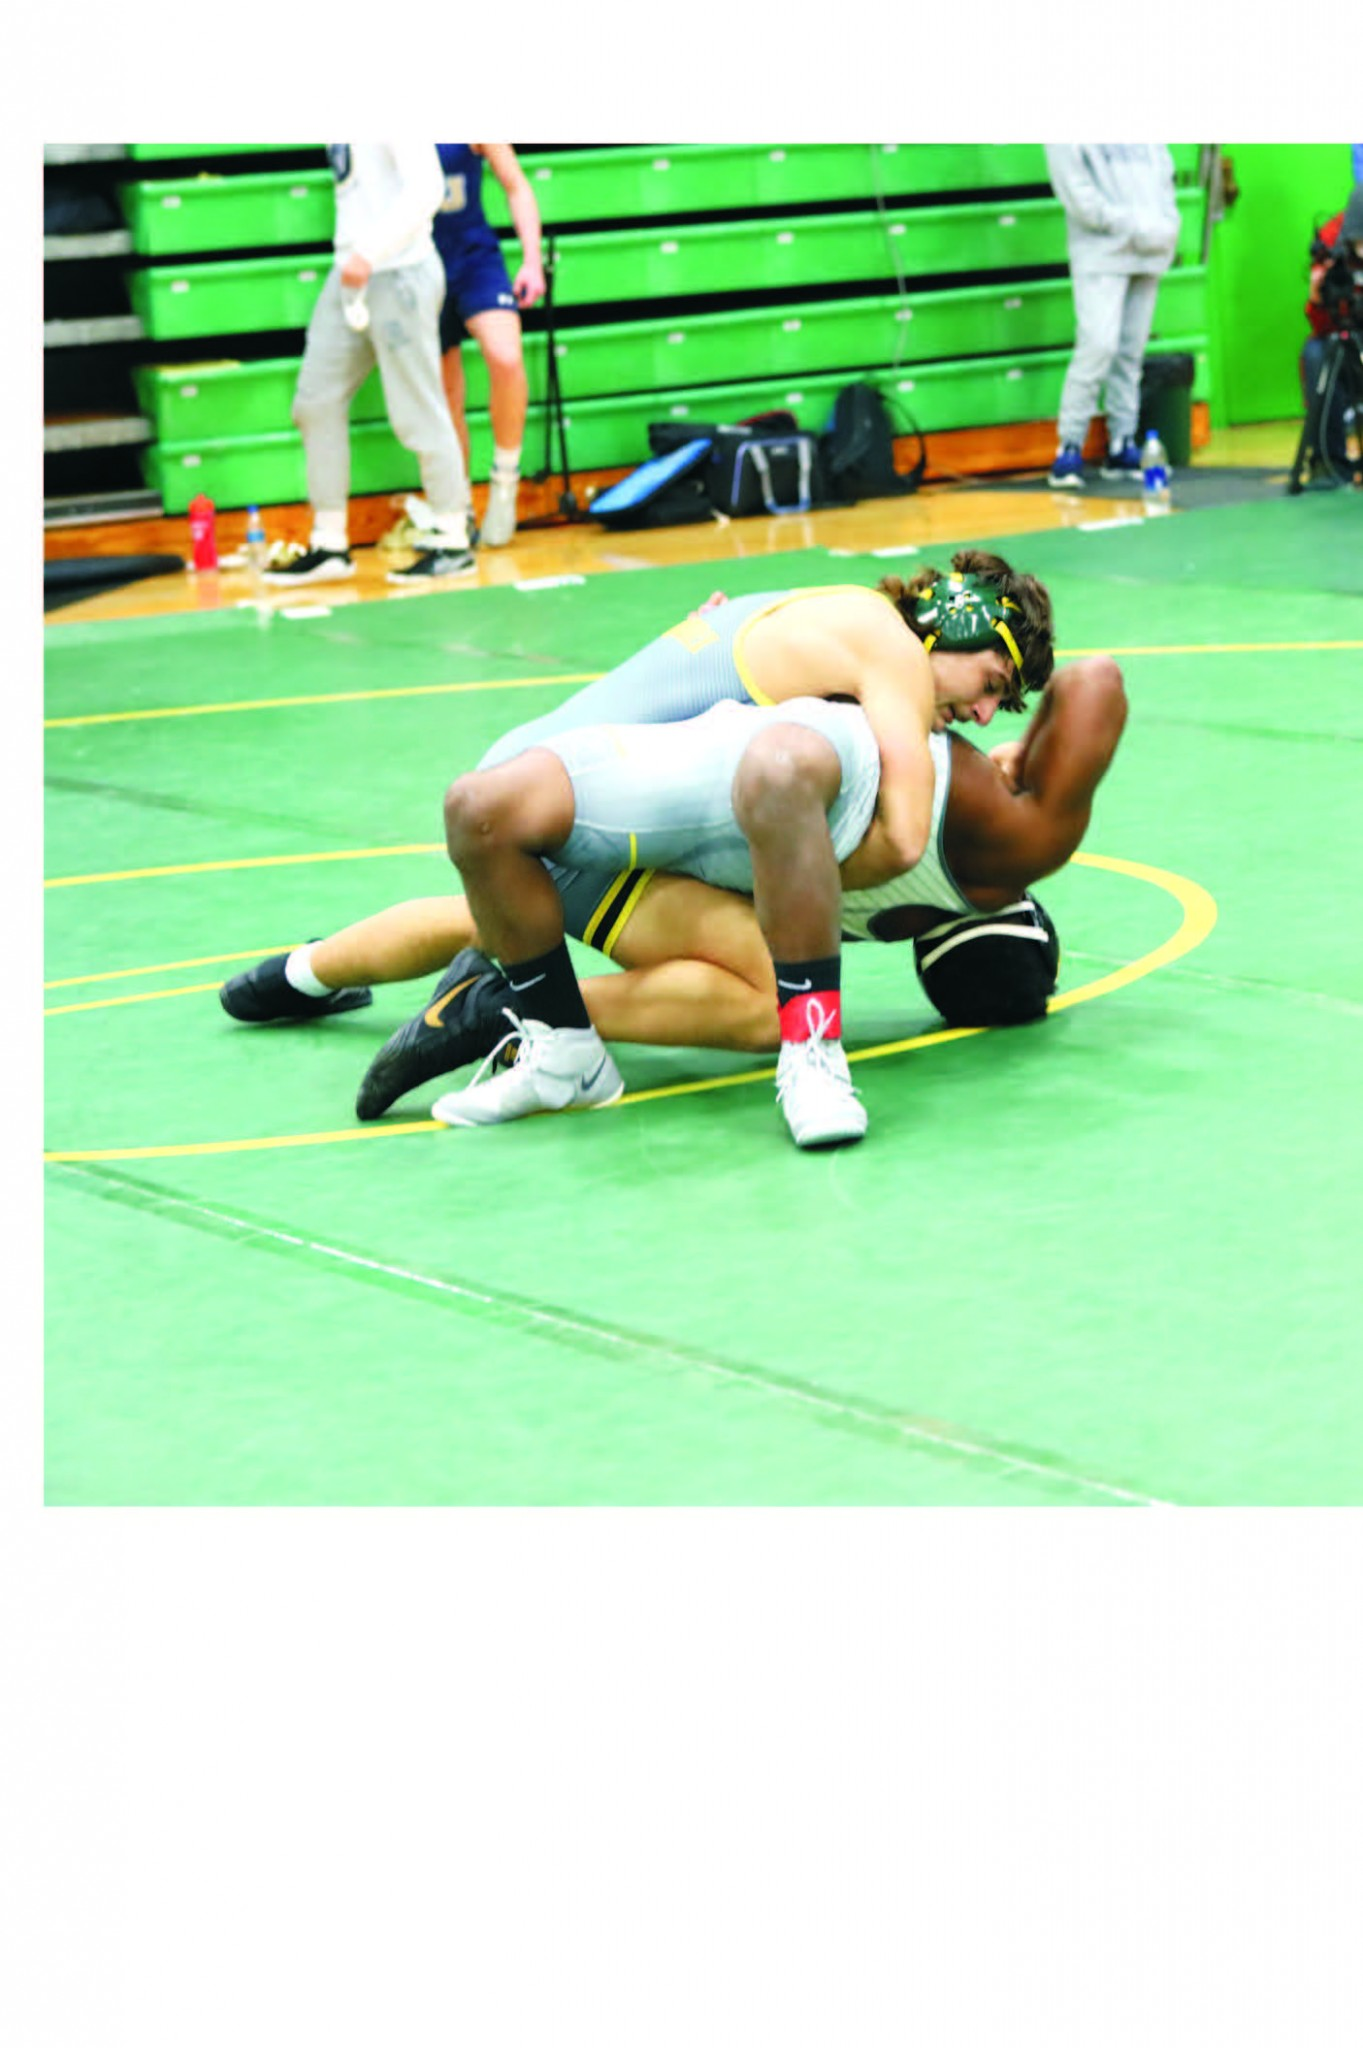 Clay junior wrestler Dominico Migliori gets a takedown. (Photo by Rich Wagner)